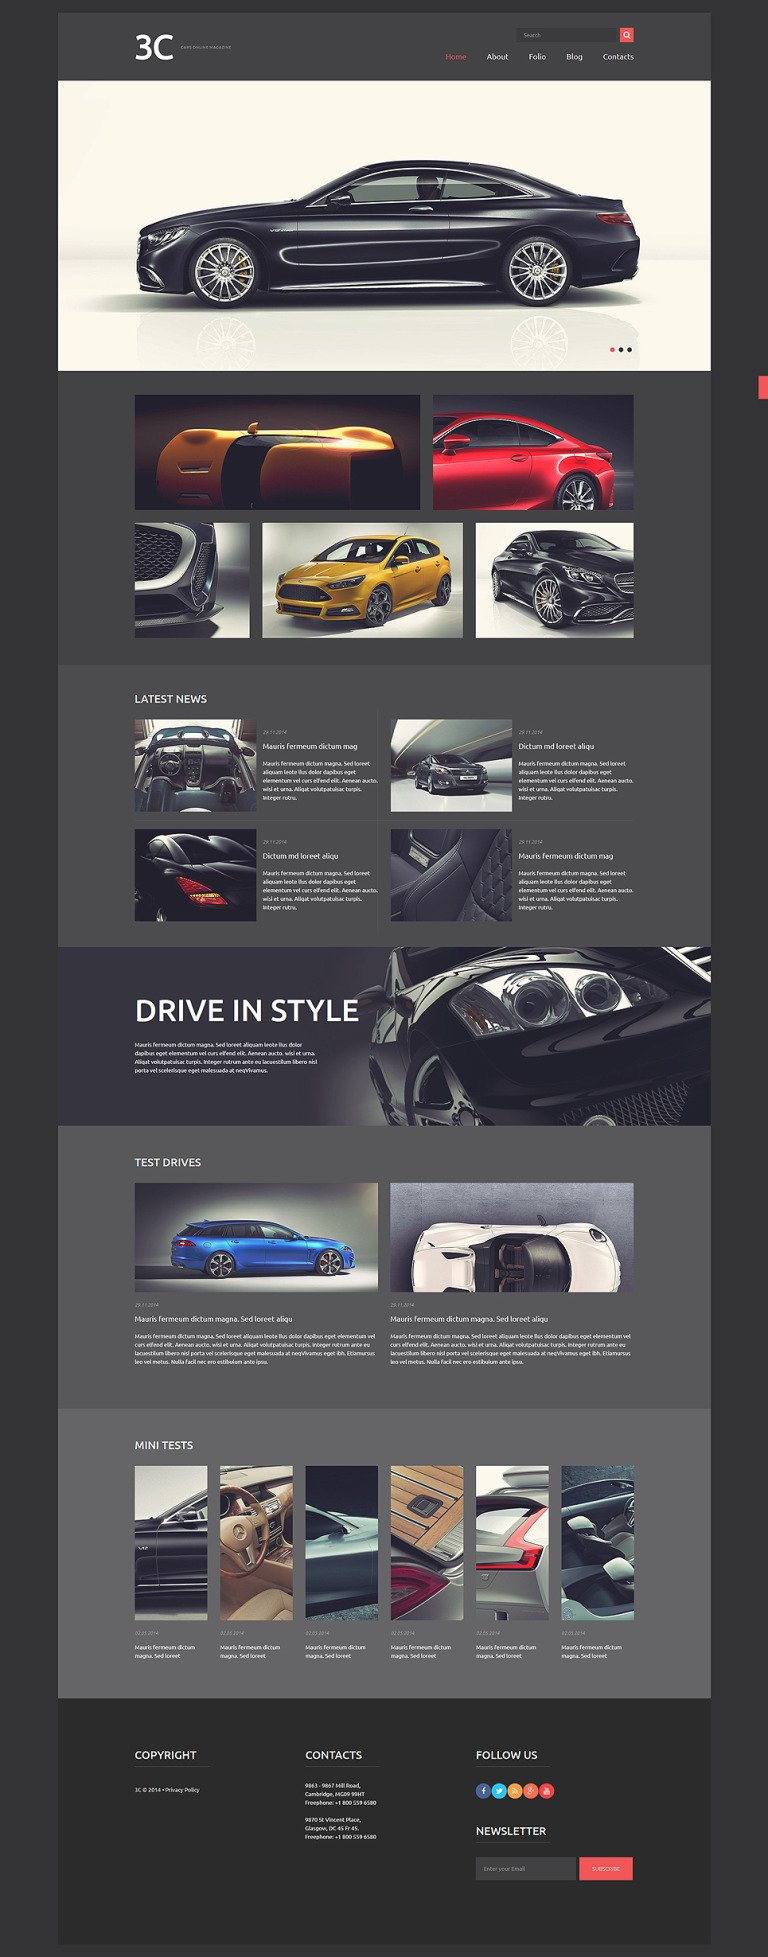 Auto Enthusiasts Club Joomla Template New Screenshots BIG